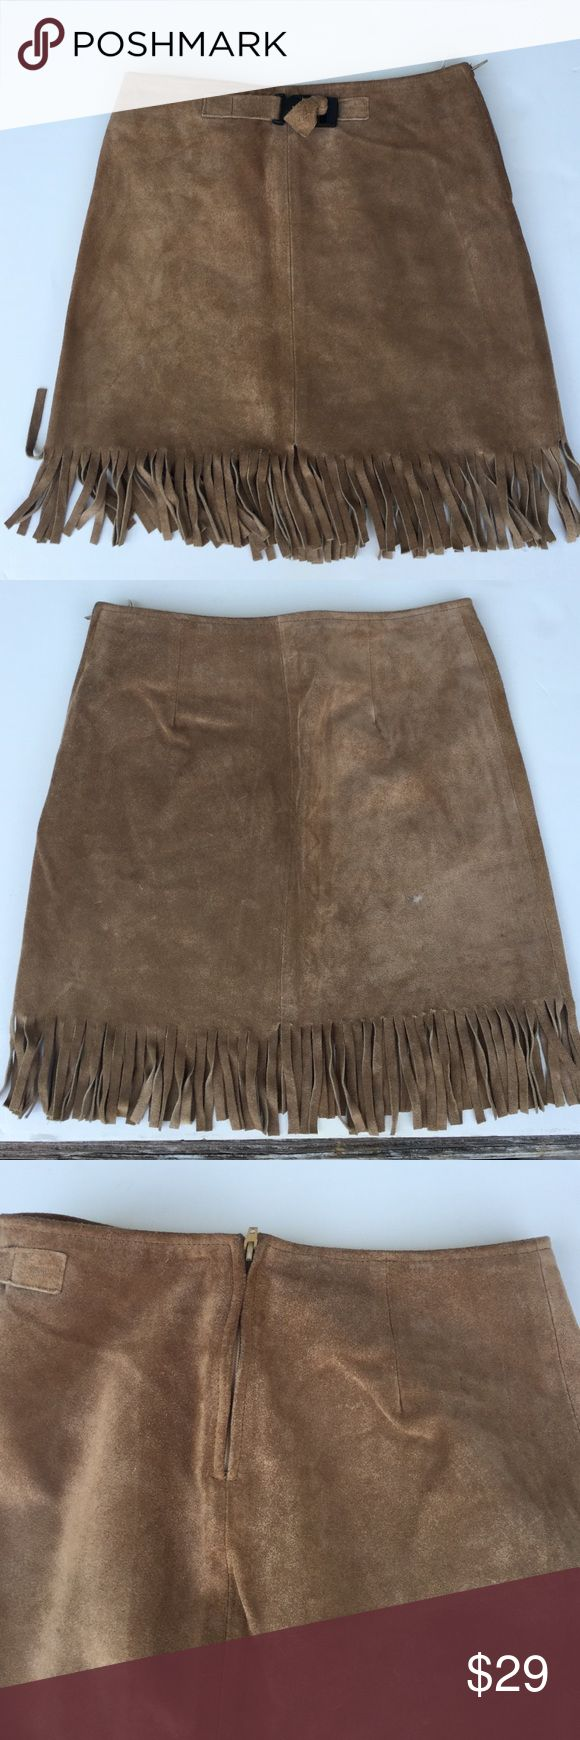 Suede Fringe Kids Mini Skirt Use but still in great condition, only one minor spot shown in picture it can probably be clean. Fully lined. United Colors Of Benetton Skirts Mini